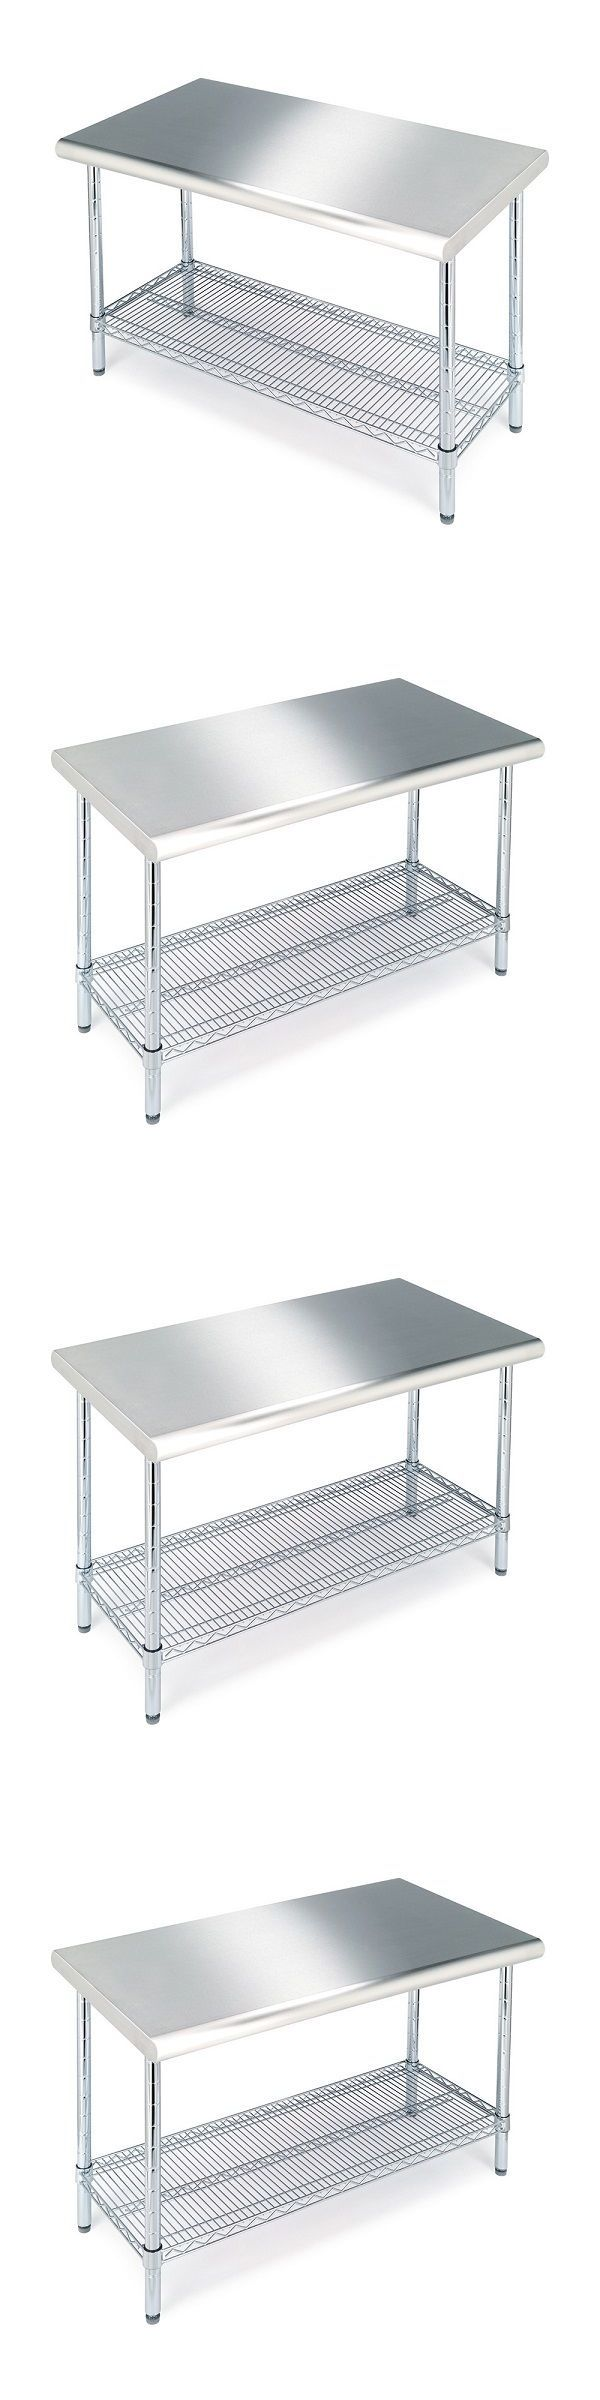 best 10 stainless steel kitchen cart ideas on pinterest kitchen islands kitchen carts 115753 kitchen island work station table large stainless steel outdoor indoor